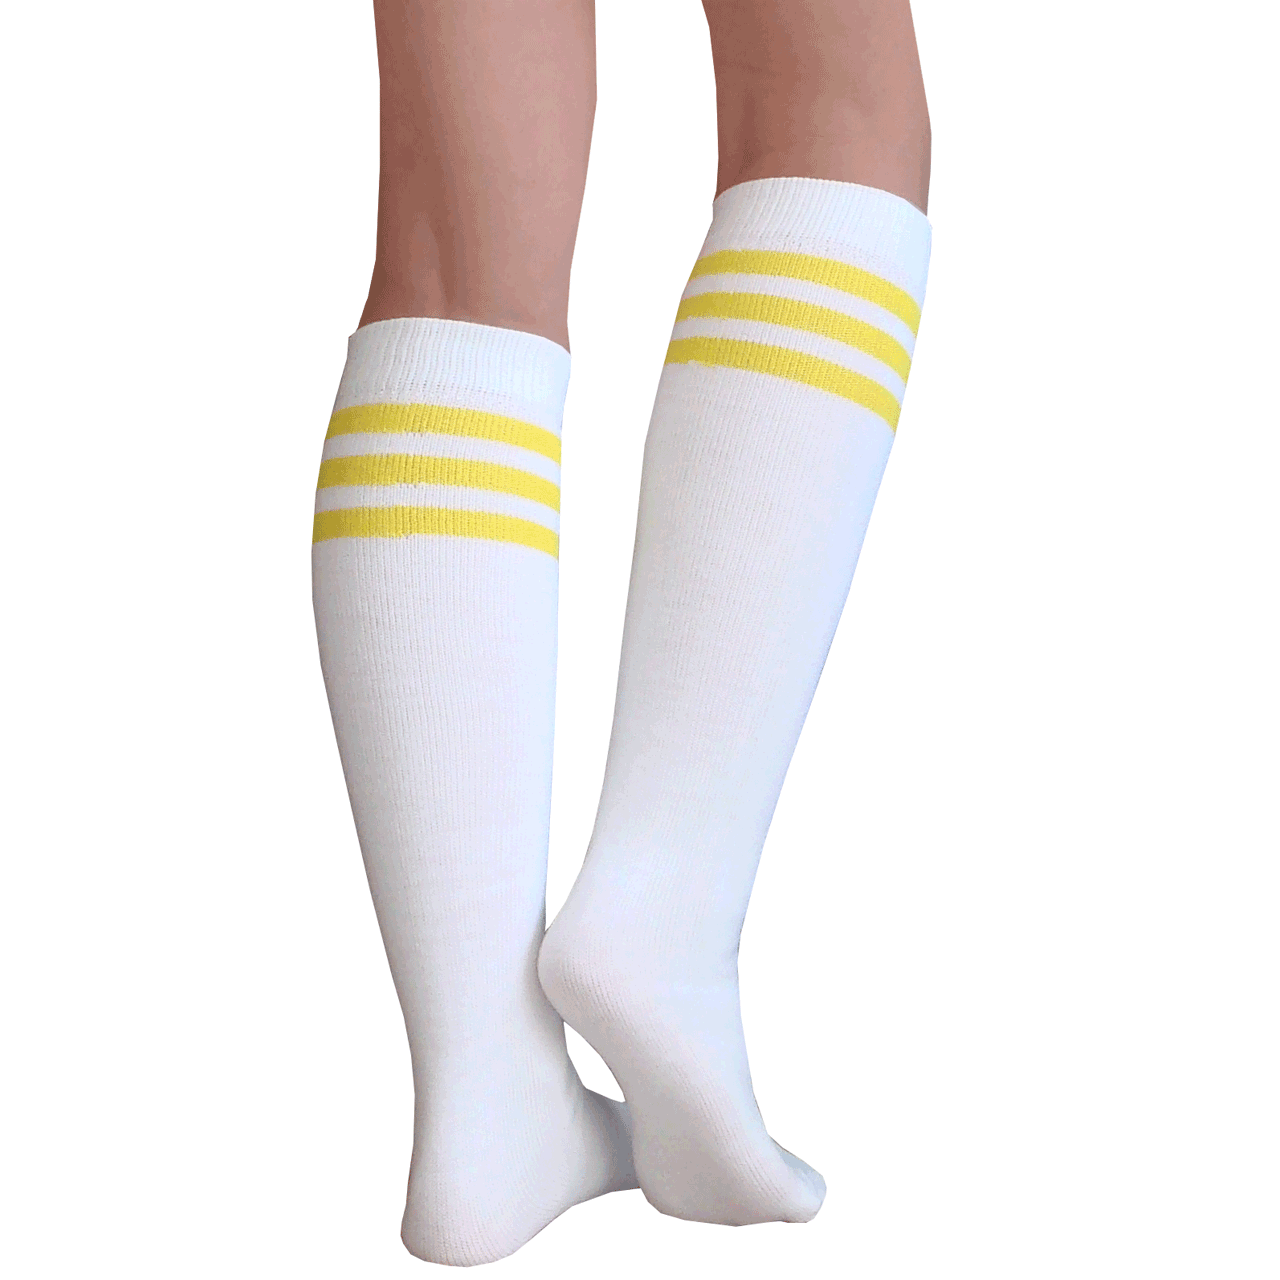 187eb3194c1 White Tube Knee Socks with Yellow Stripes